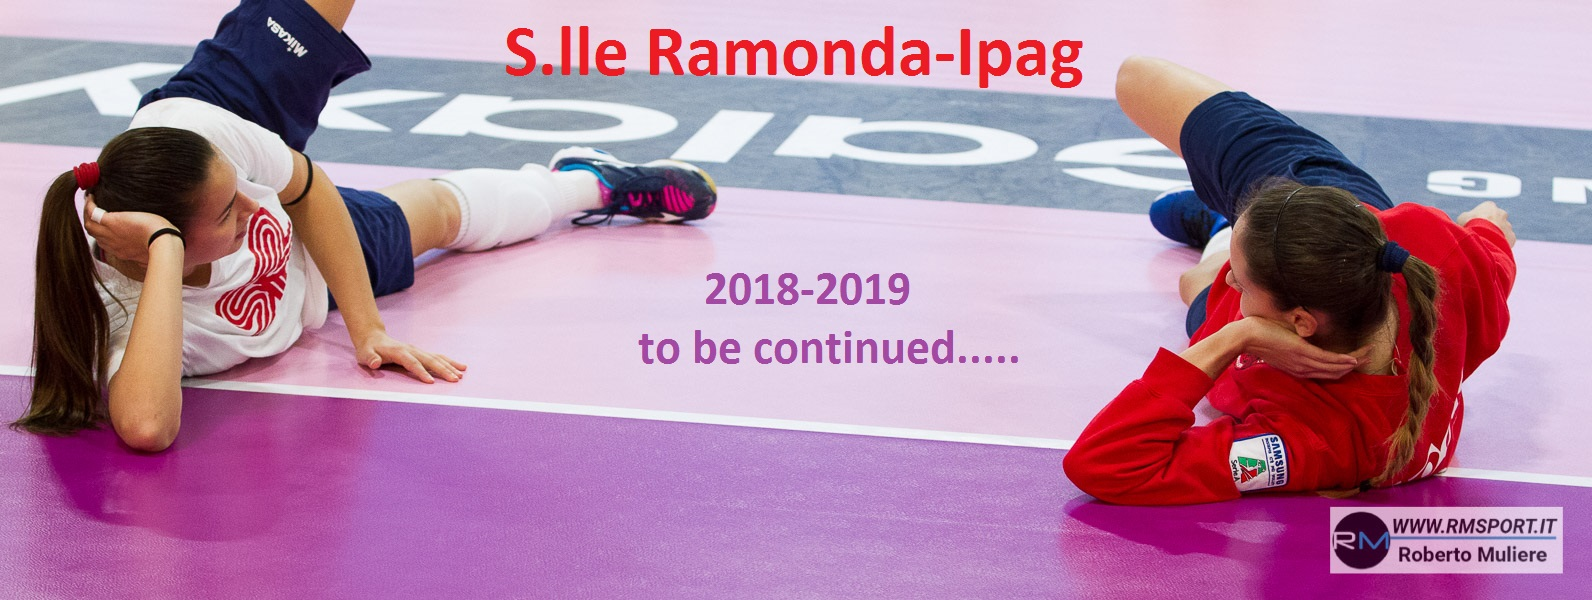 stagione 2018-19